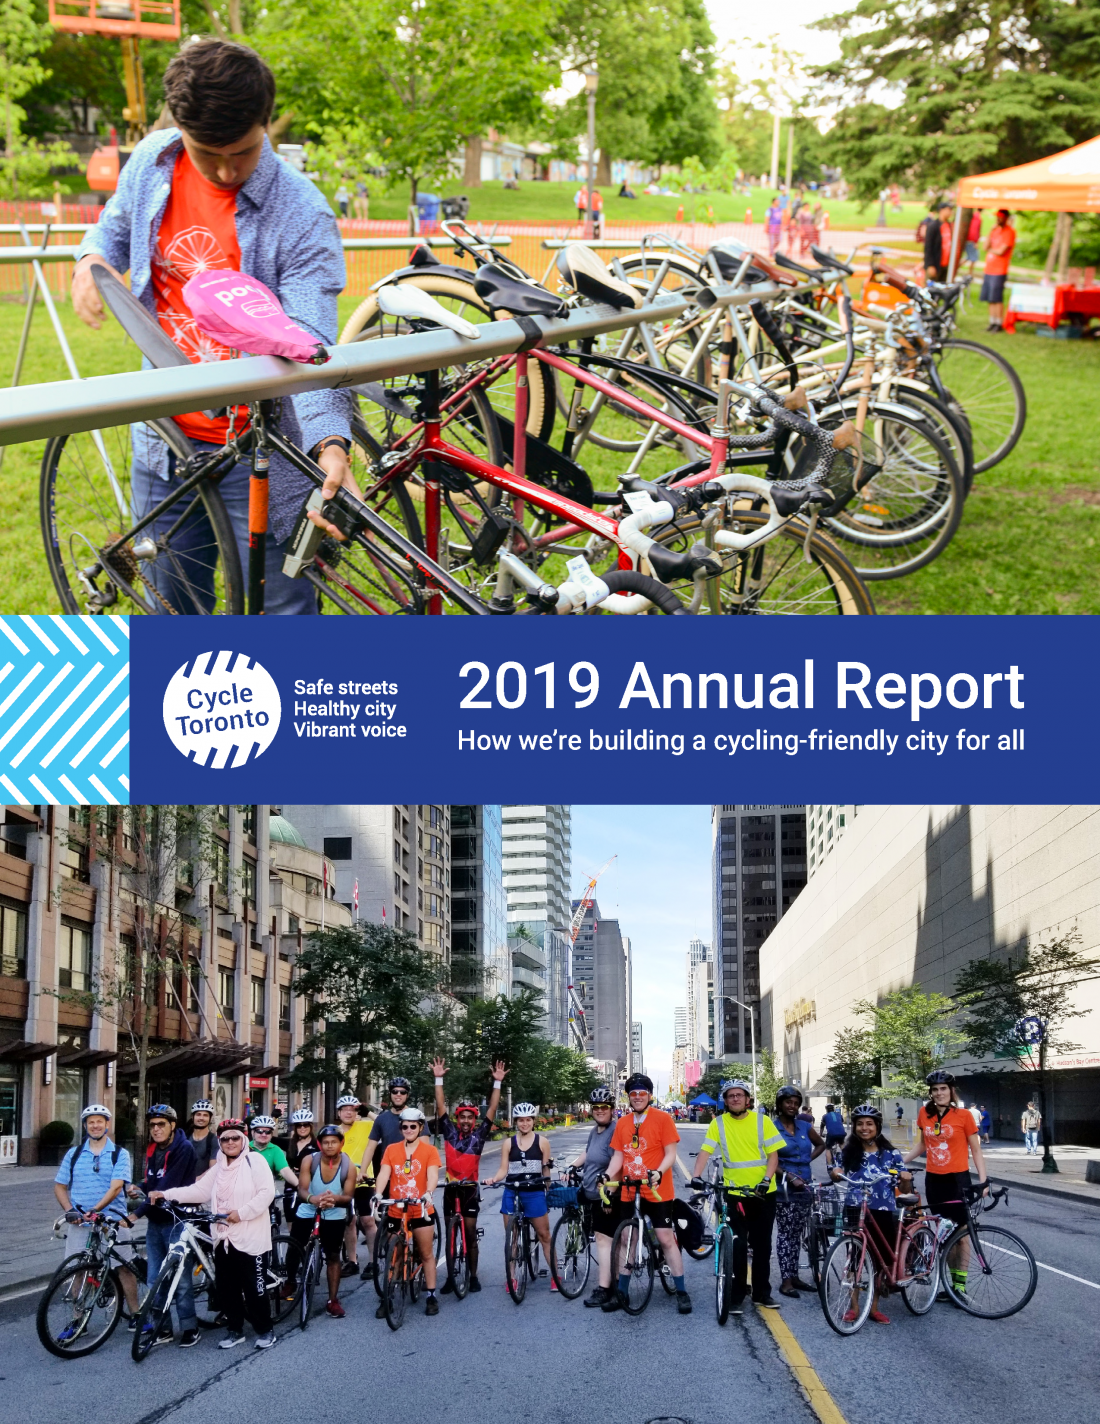 Cycle Toronto 2019 Annual Report cover page. Bikes being parked on top. Bike riders celebrating on bottom.